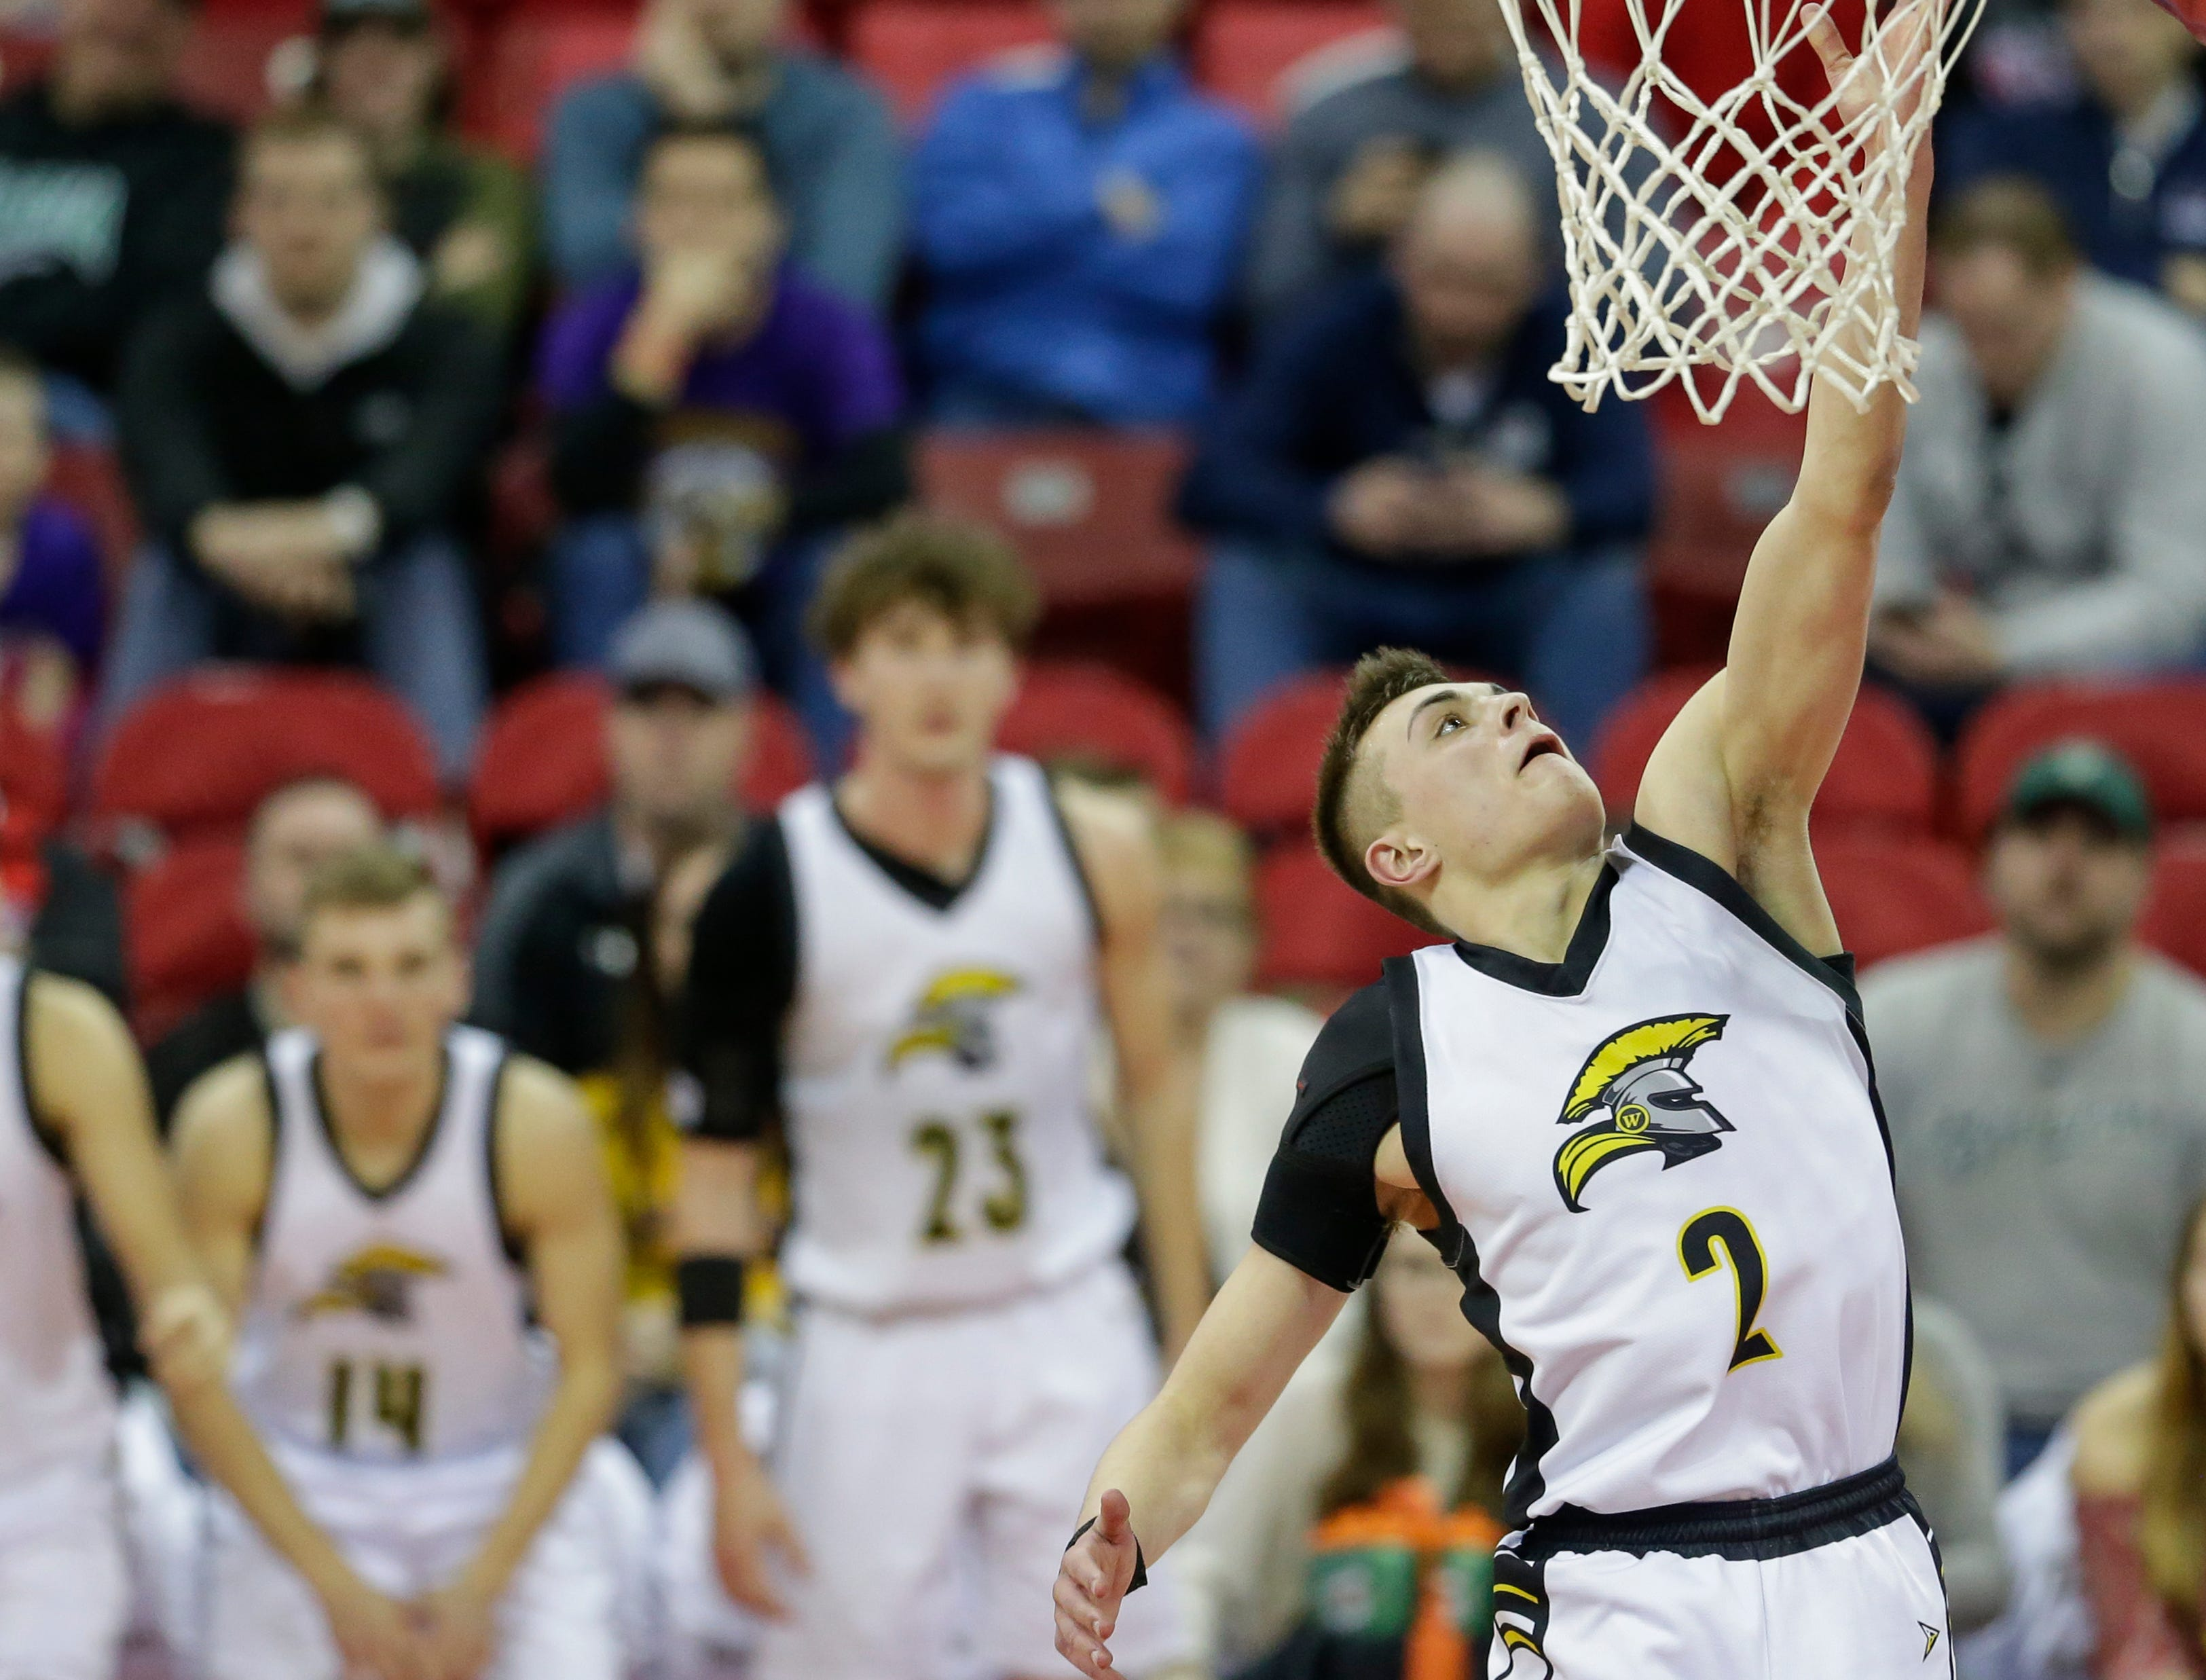 Waupun's Trevor VandeZande (2) goes to the rim for a layup against Denmark during their WIAA Division 3 boys basketball state semifinal at the Kohl Center Thursday, March 14, 2019, in Madison, Wis.